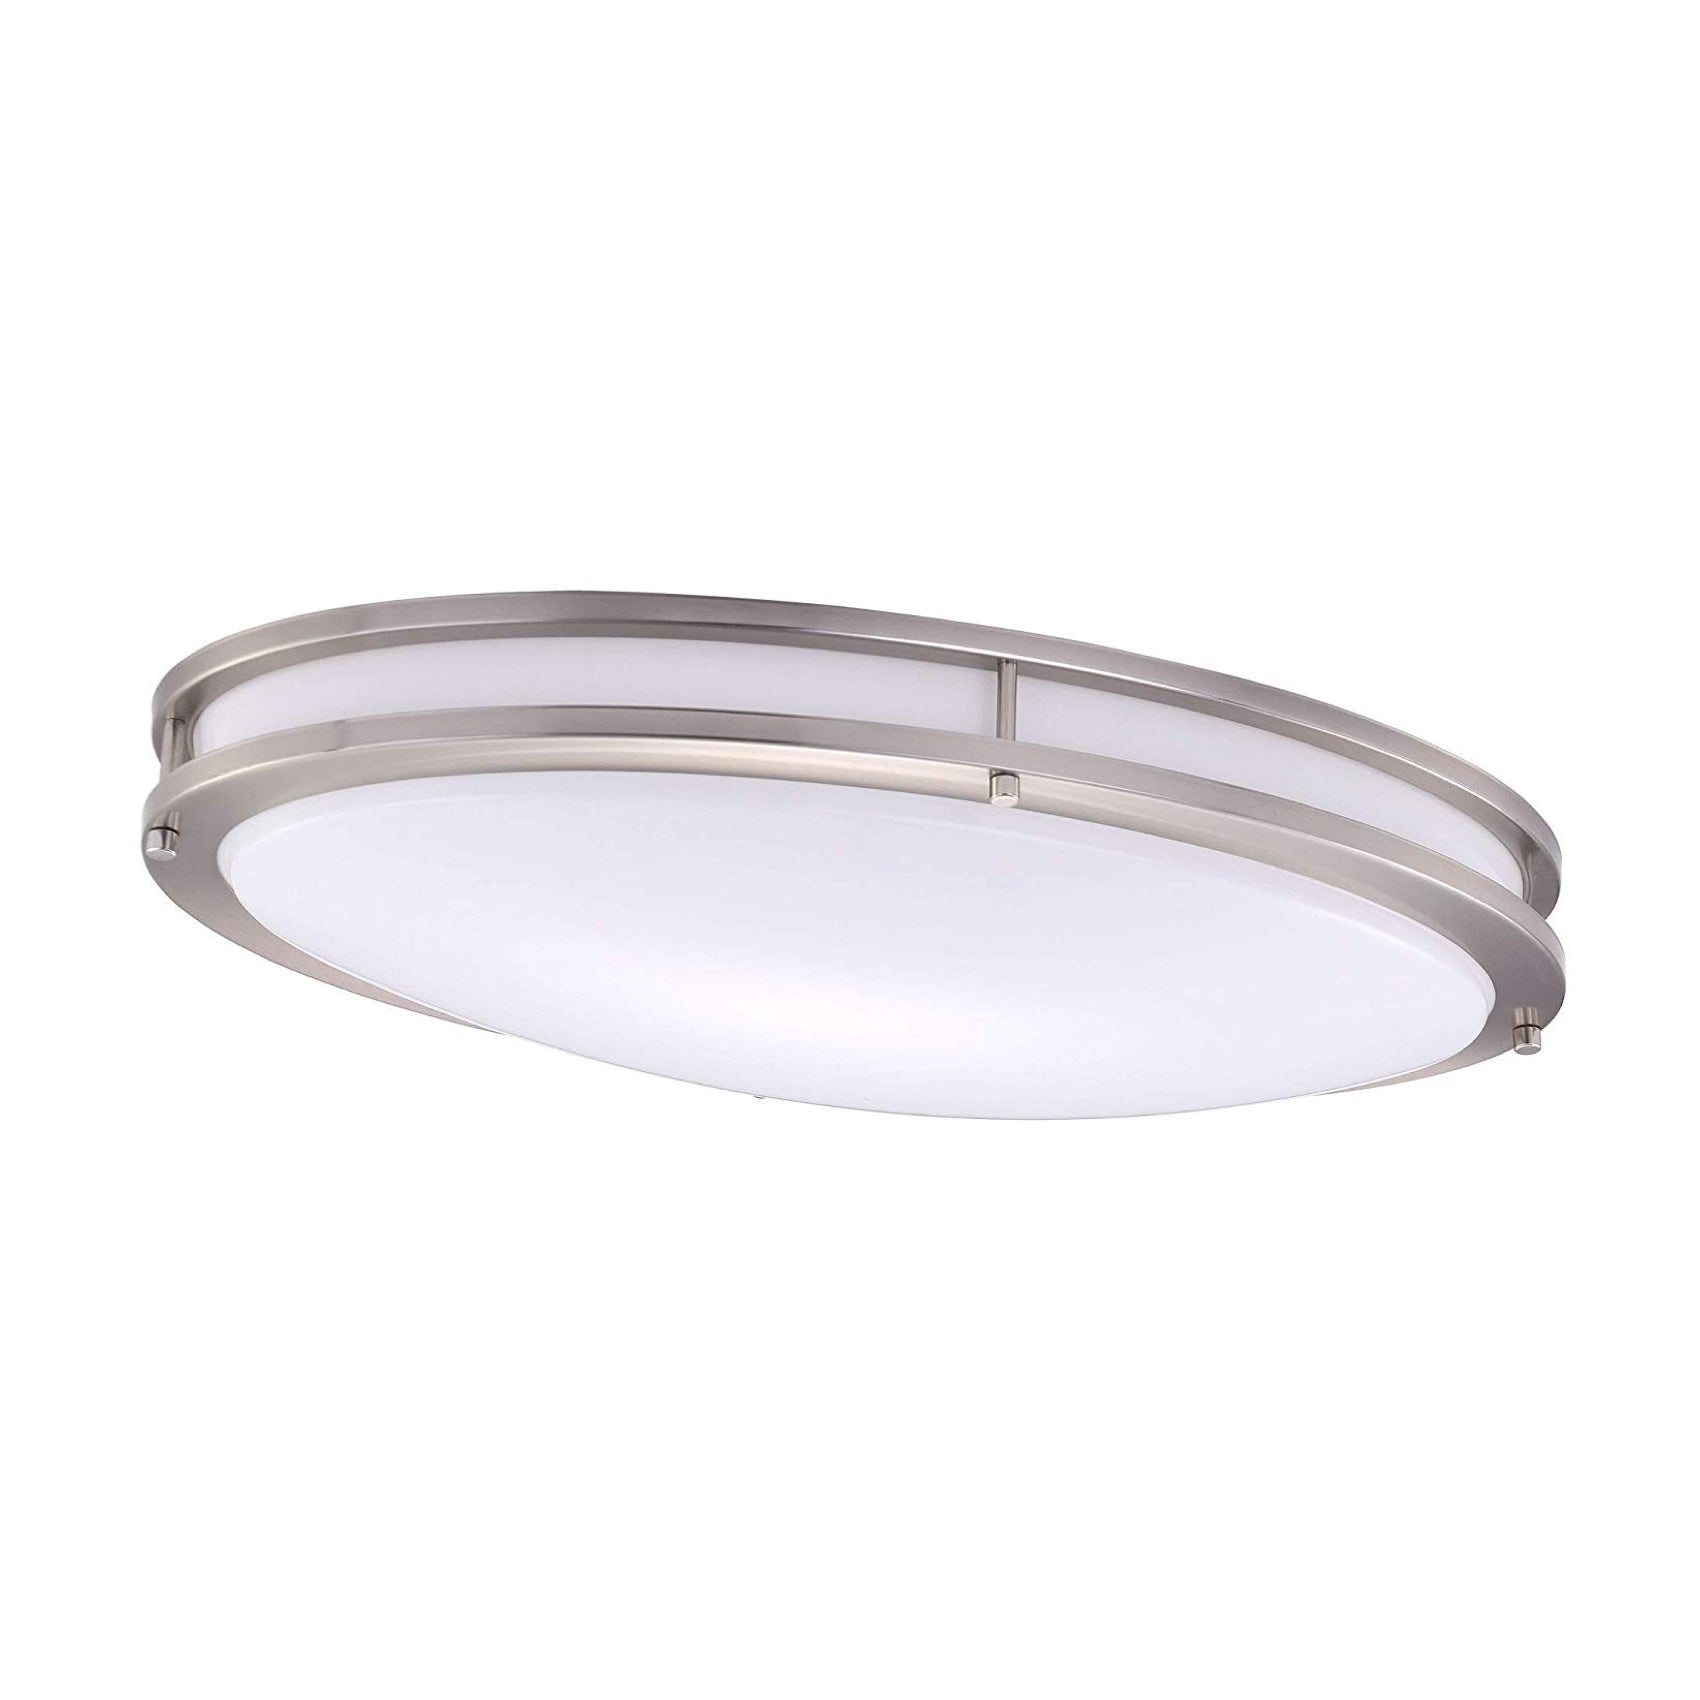 LED Flush Mount Oval Ceiling Light, Dimmable, 24-inch, 28W, 4000K Cool White, Brushed Nickel Finish